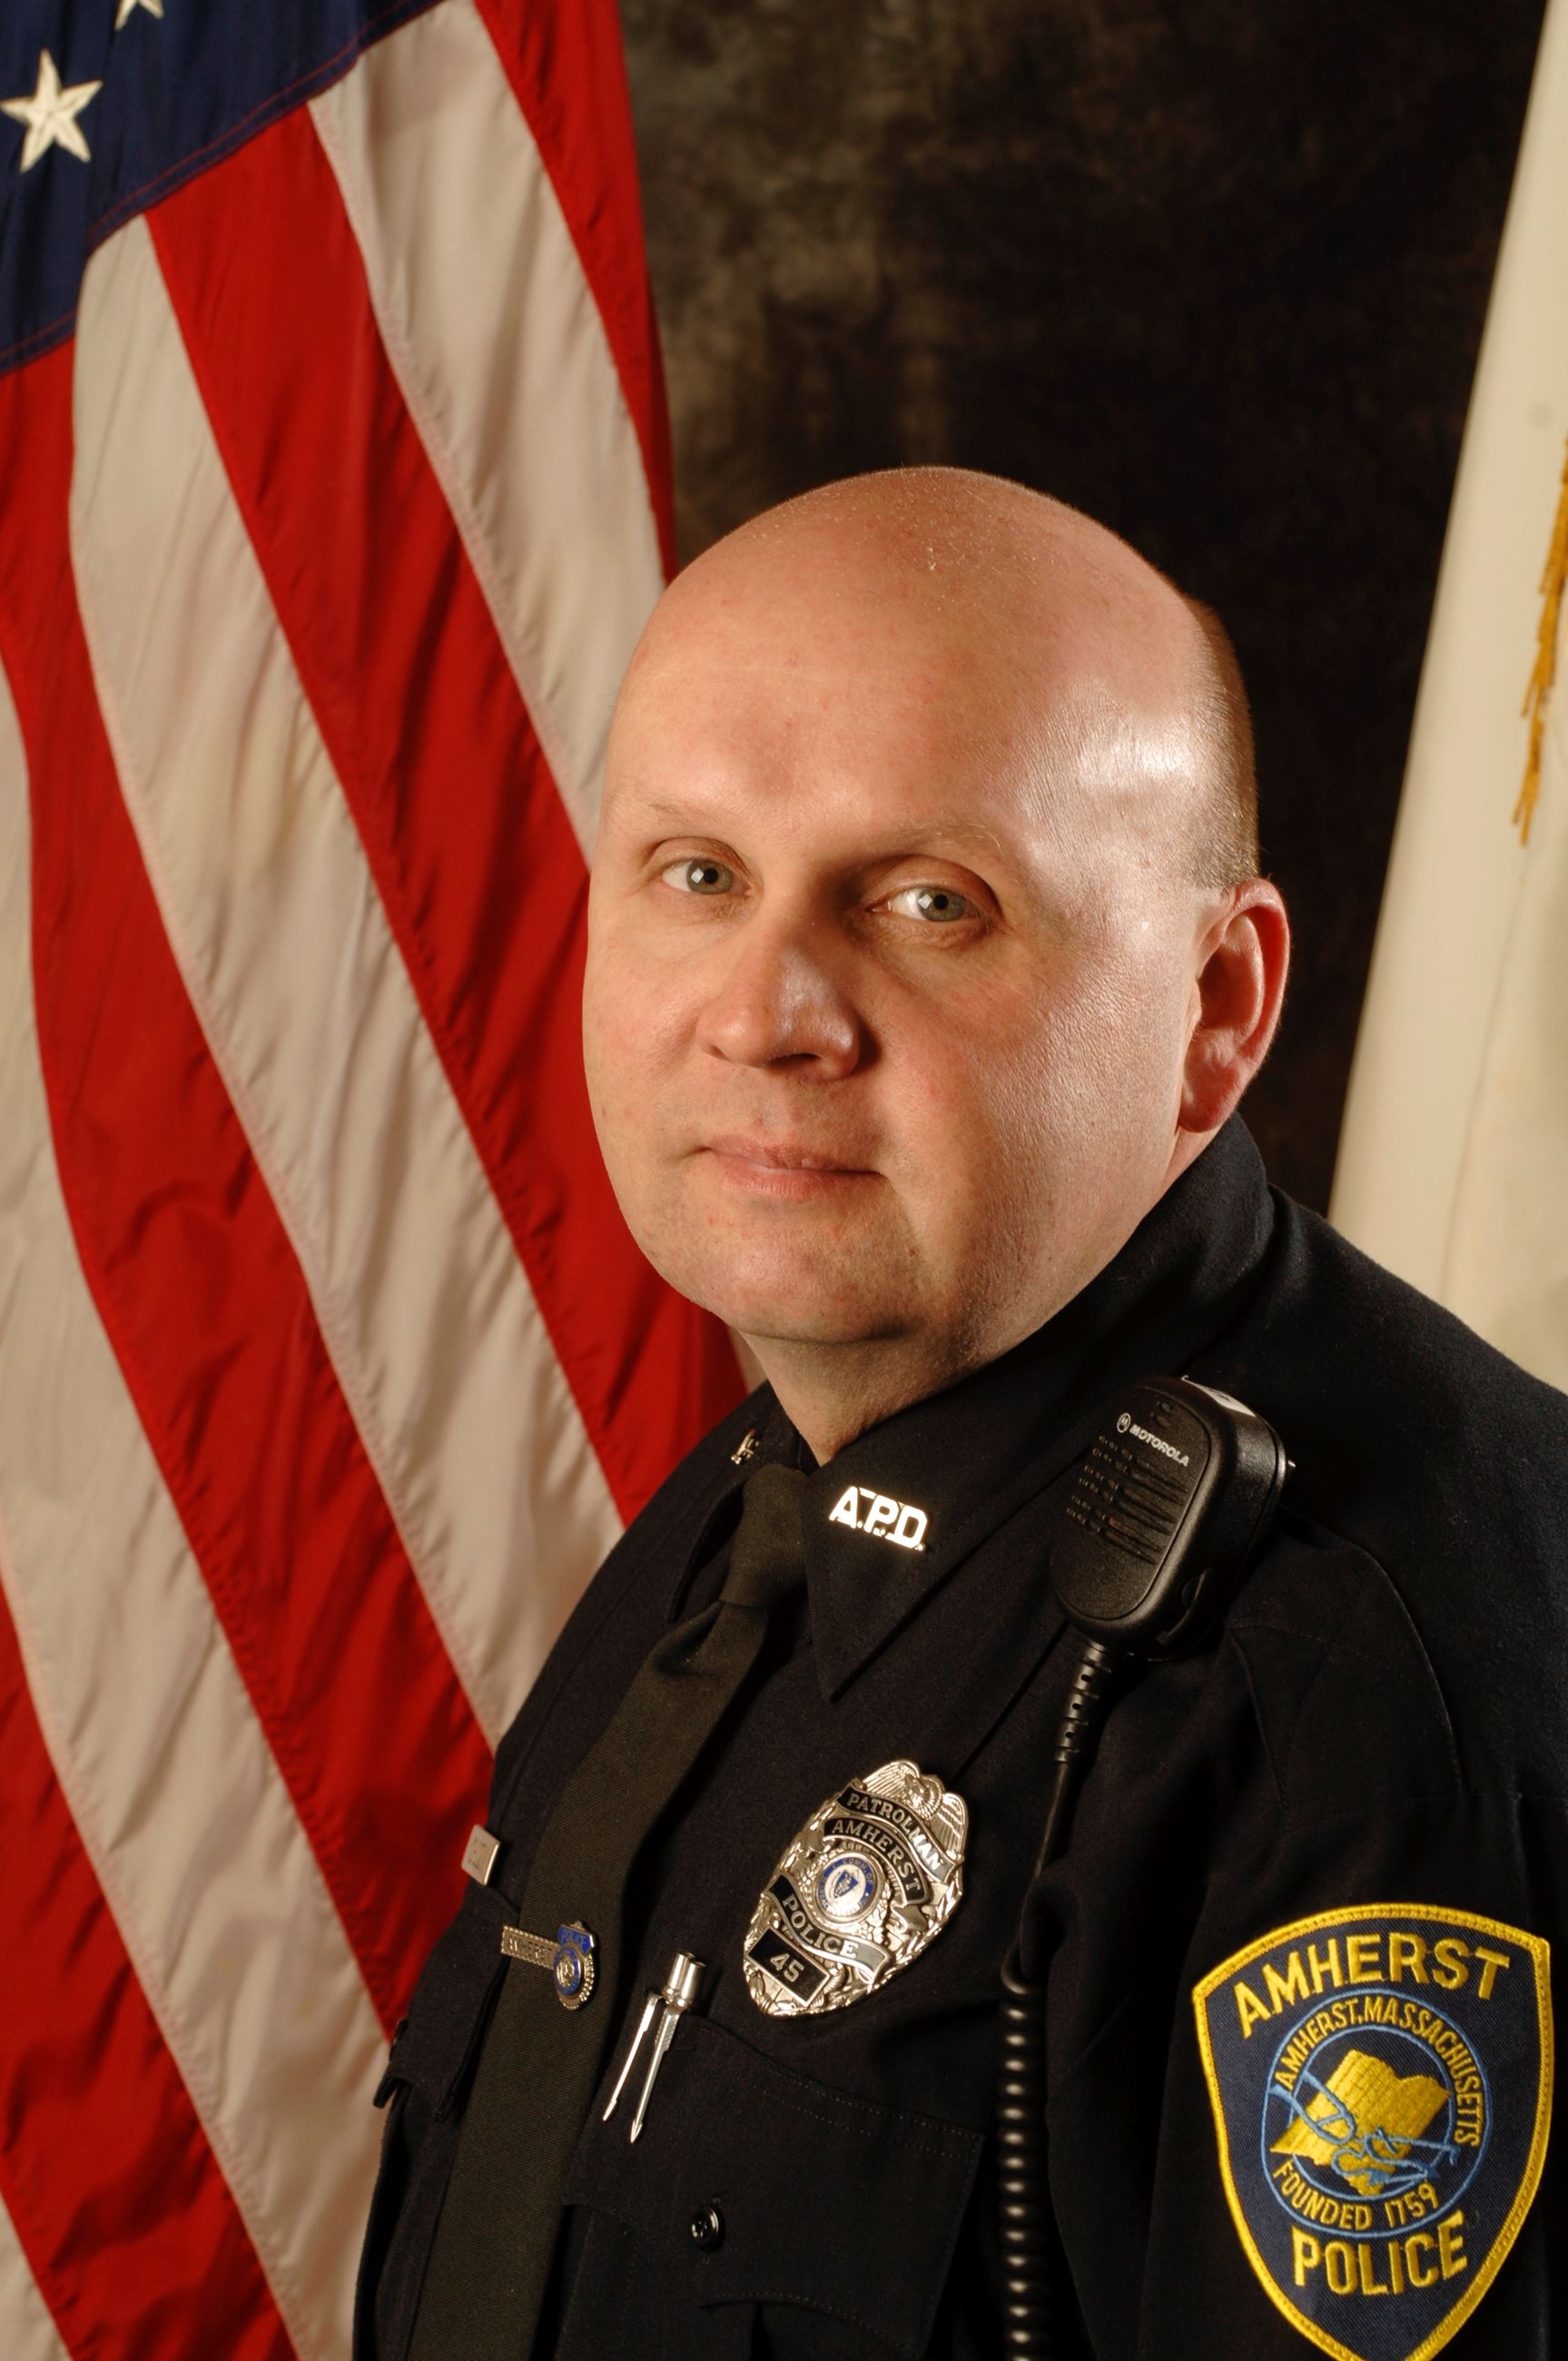 Officer John Chudzik (1)